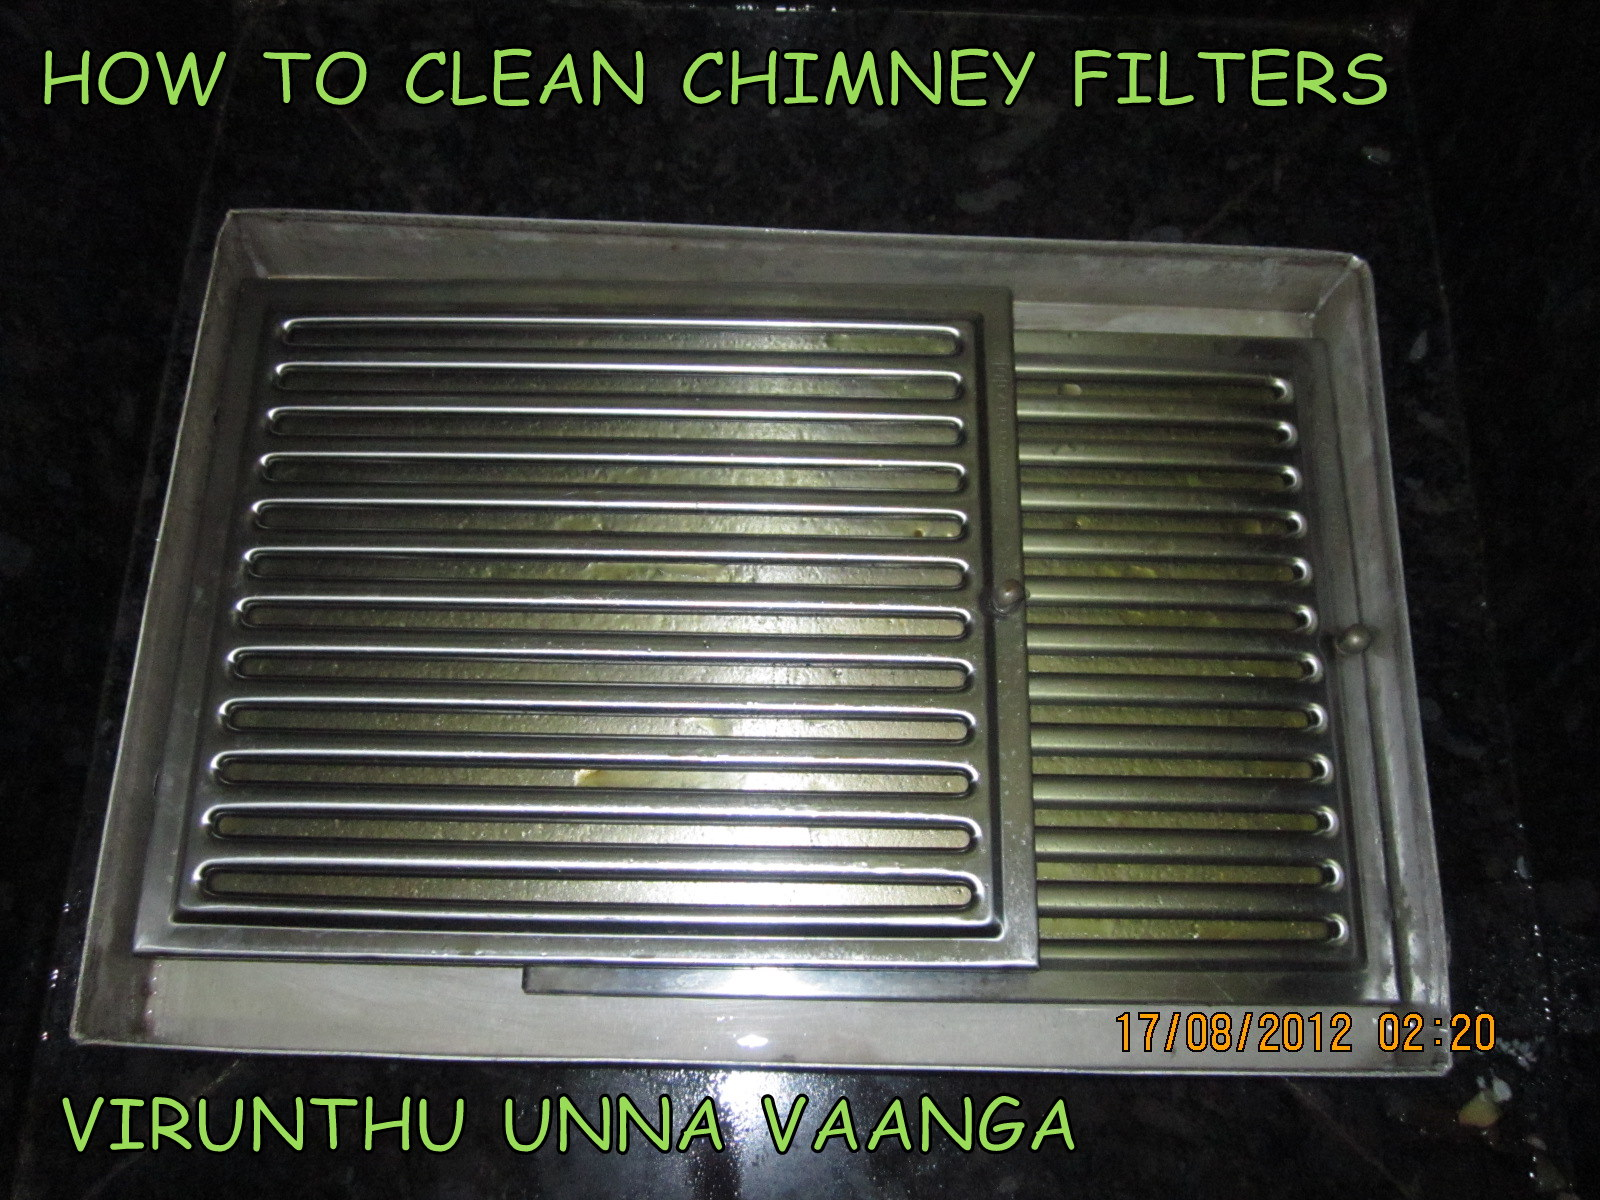 Virunthu Unna Vaanga Clean Baffle Filters Of Electric Chimney